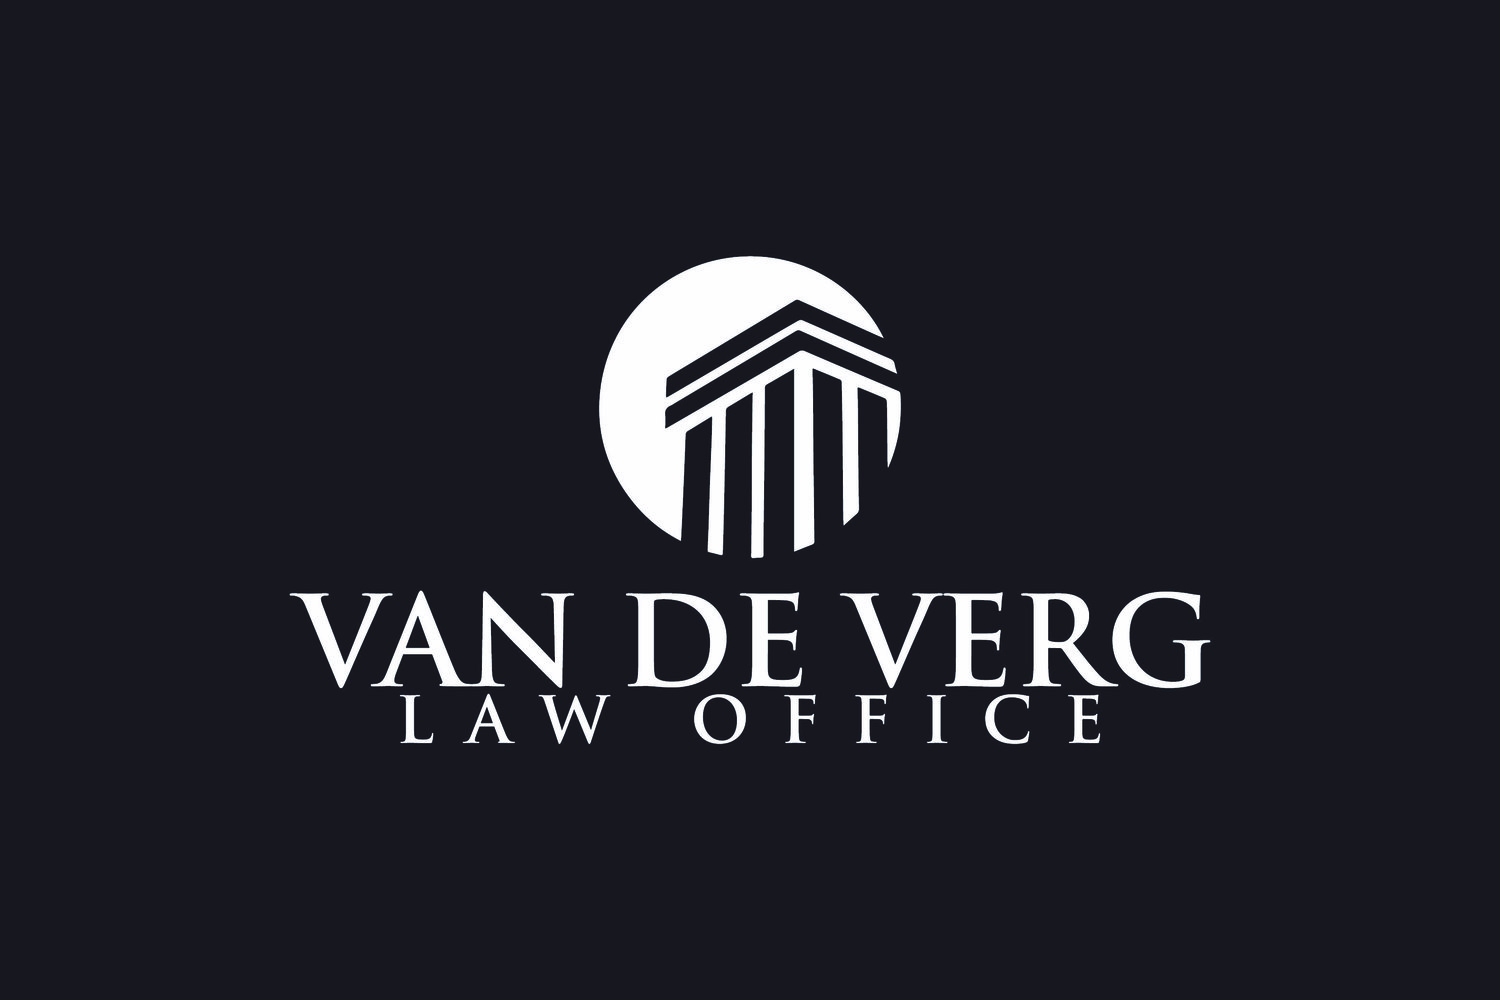 Van de Verg Law Office, LLC